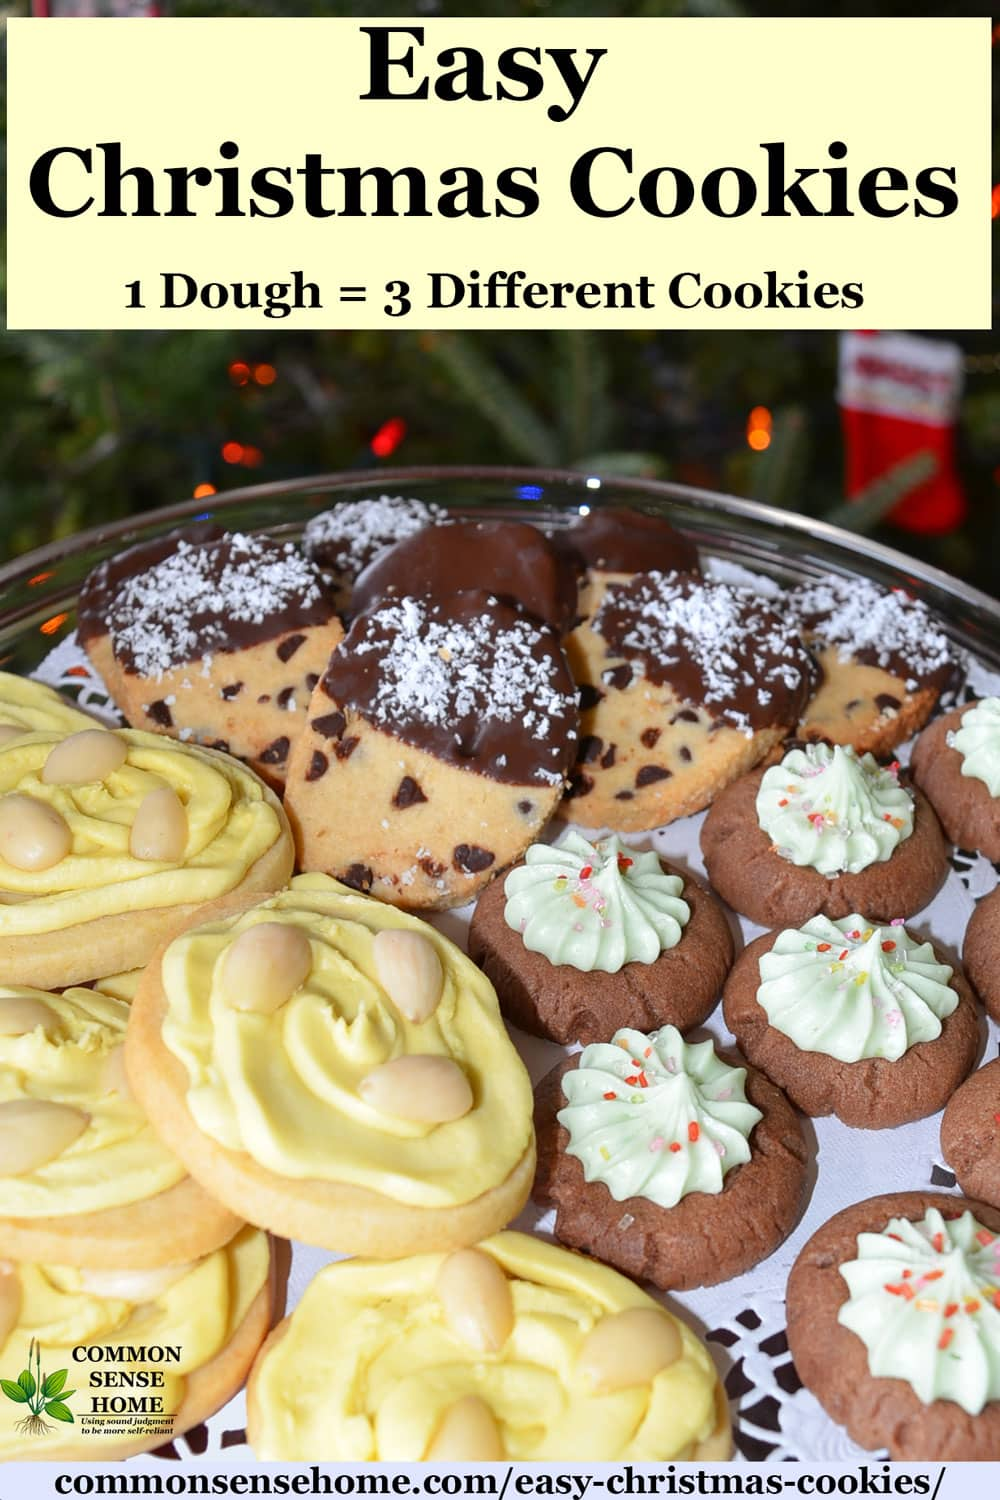 Easy Christmas Cookies - 1 Dough = 3 Different Cookies - lemon, chocolate chip and chocolate mint